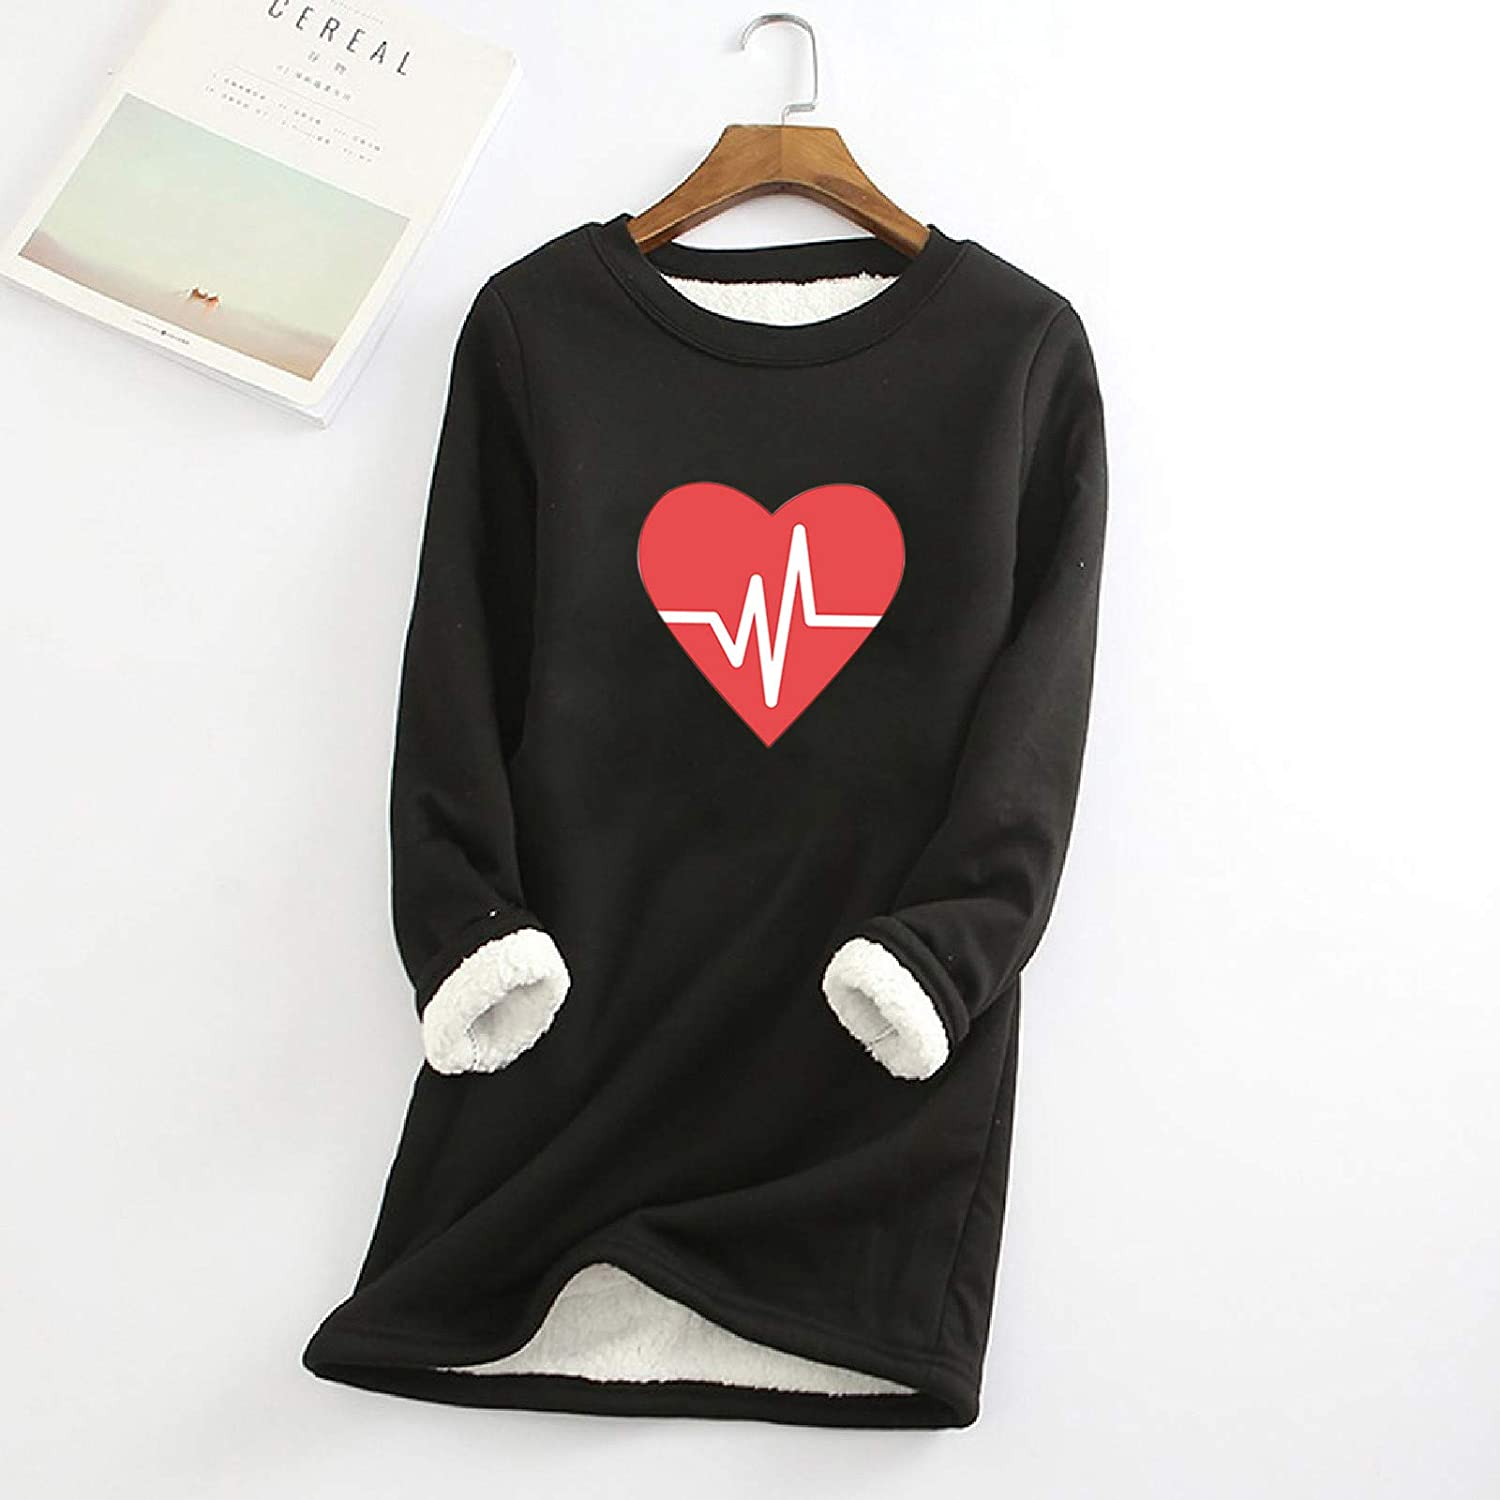 LOVESOO Thermal Underwear for Women Long Sleeve Shirts Beating heart Tunic Tops Winter Warm Basic Casual Bolouses